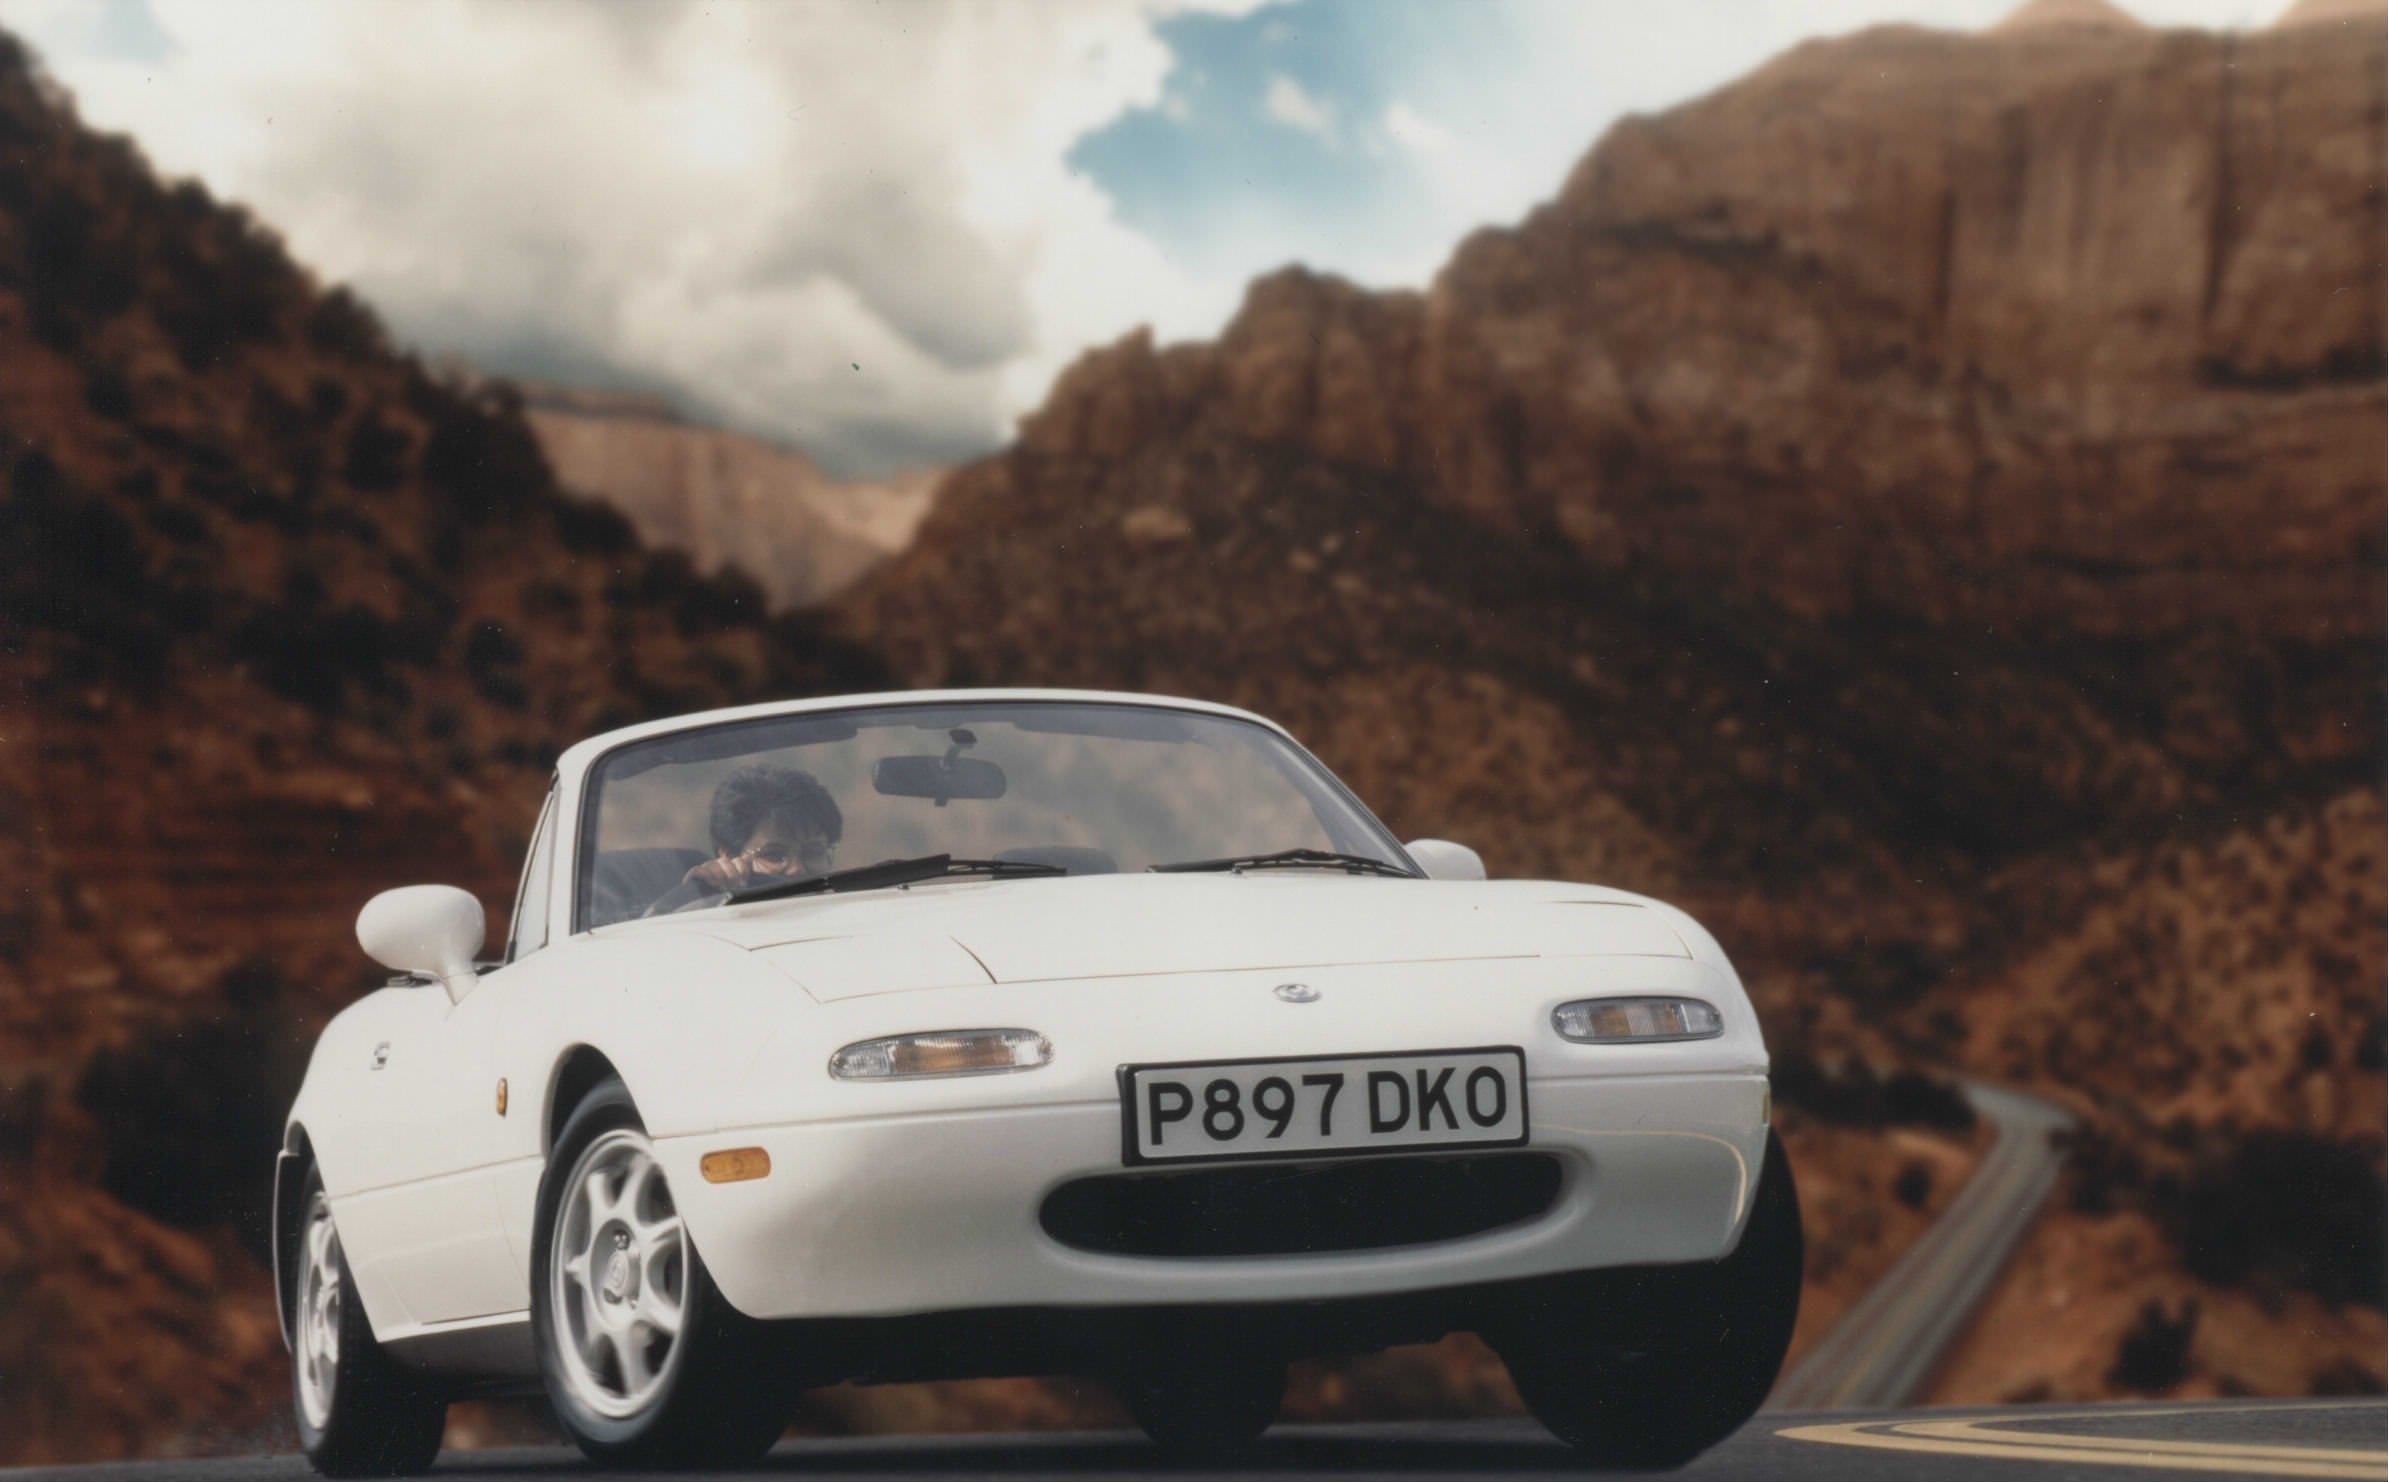 image of a vintage white mazda mx 5 car exterior